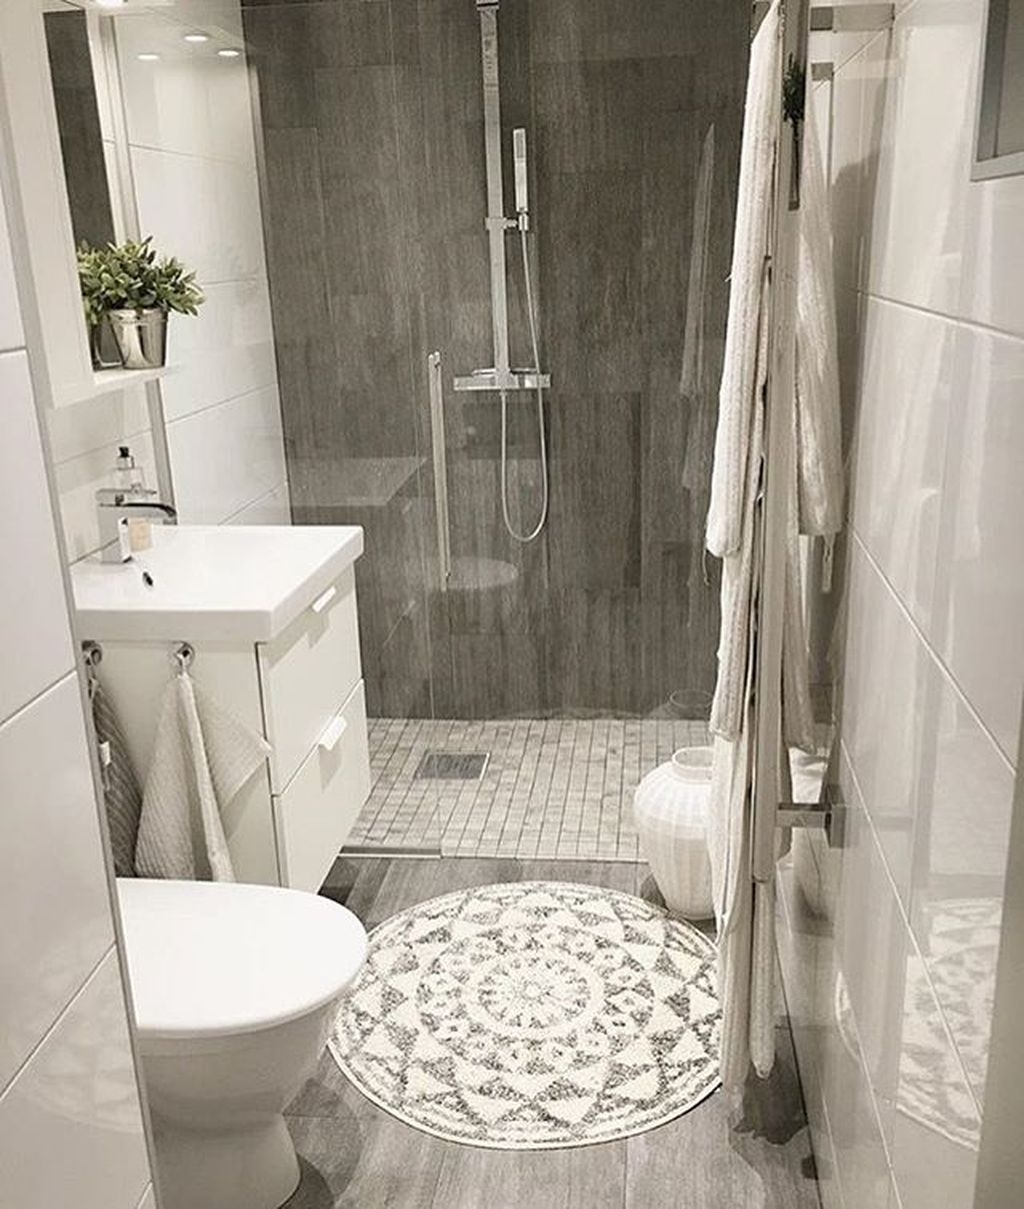 39 Cool And Stylish Small Bathroom Design Ideas28